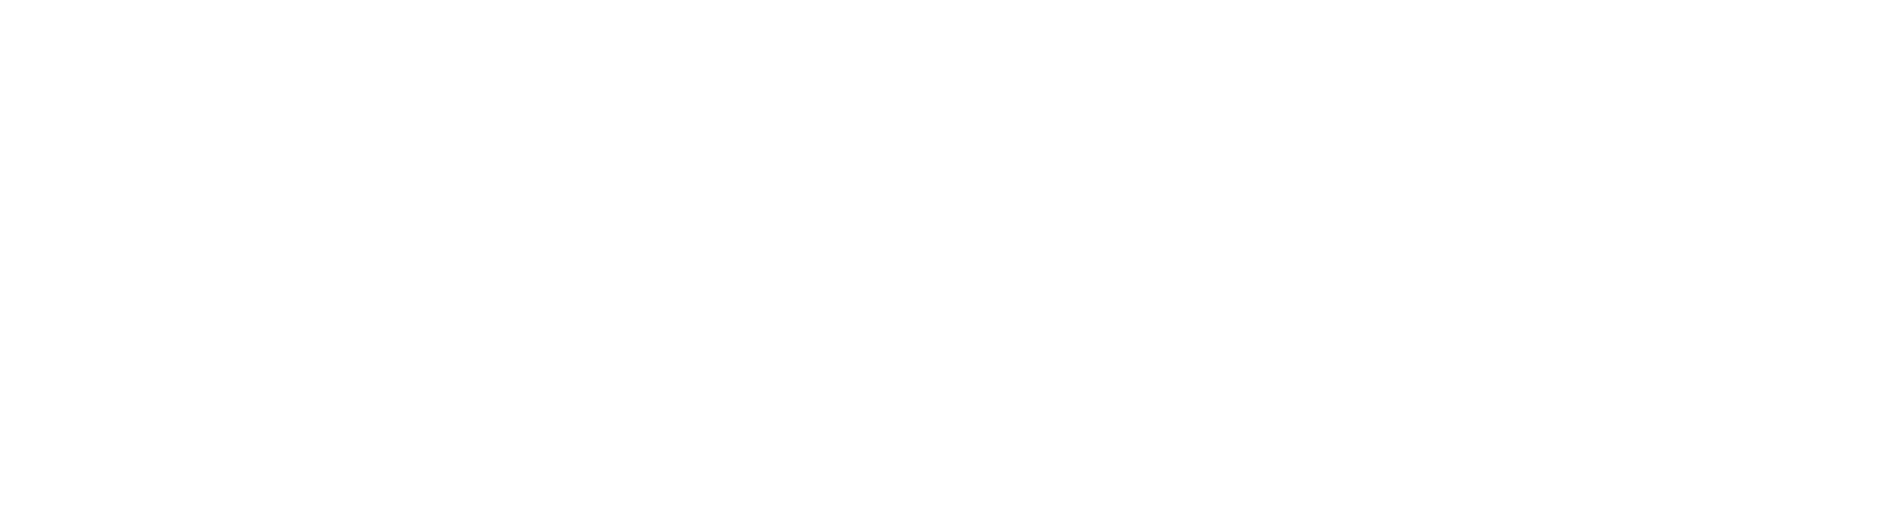 dual career assistance college of arts sciences university of kentucky logo